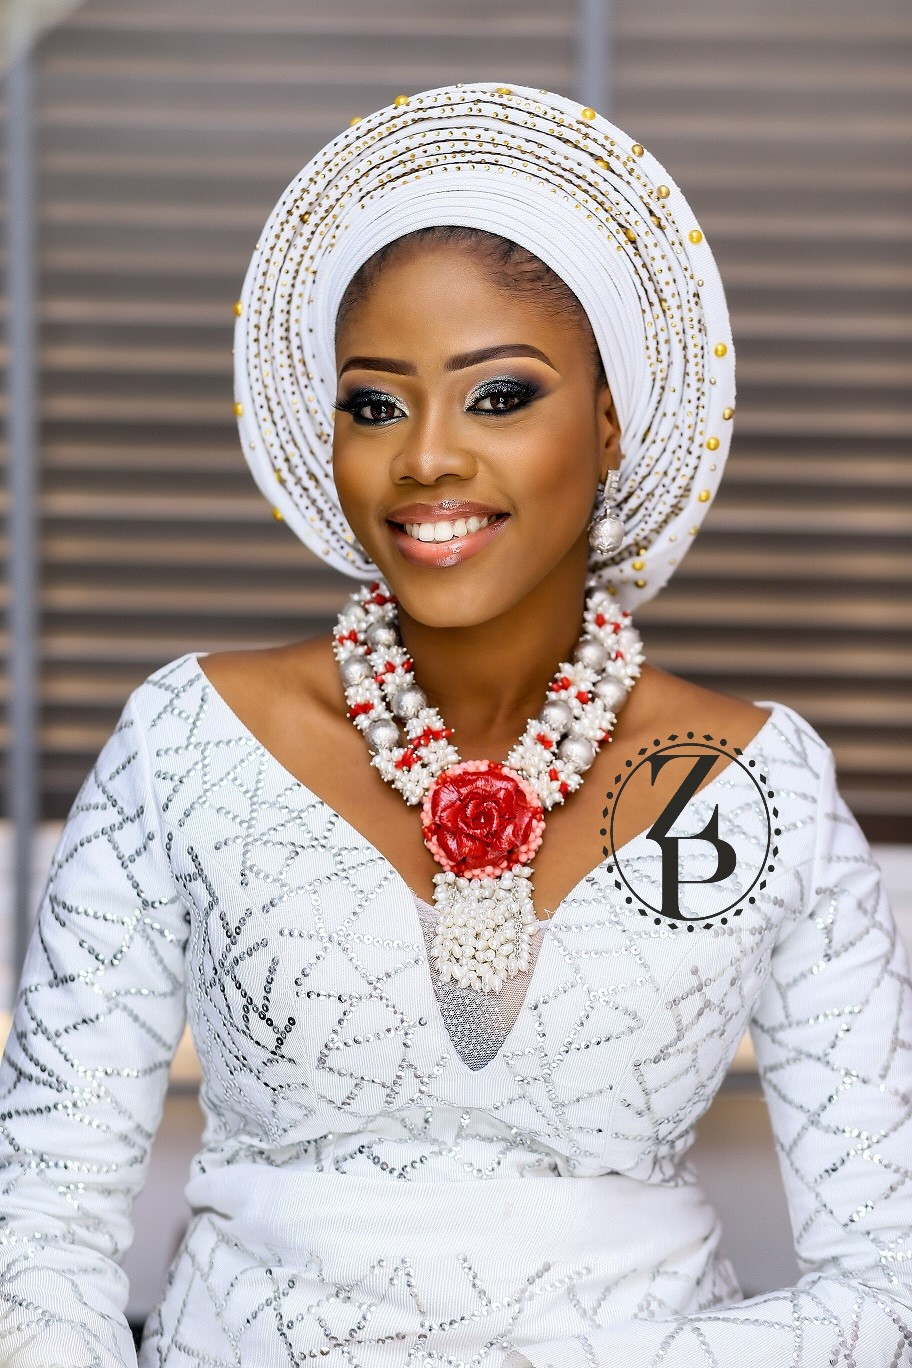 yoruba-woman-in-traditional-outfit-pearl-and-coral-jewelry-gele.jpg